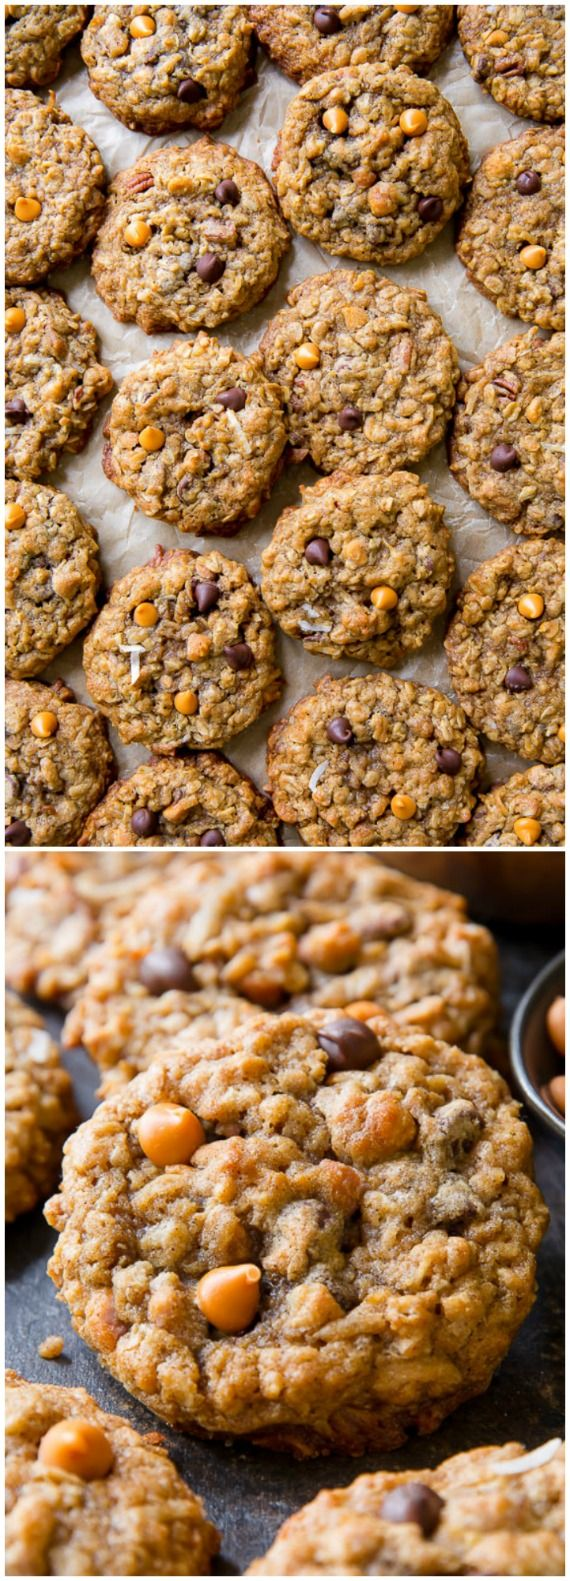 Magic 5 Cookies - These soft and chewy oatmeal cookies have it all! Chocolate chips, coconut, pecans, butterscotch, and oats.